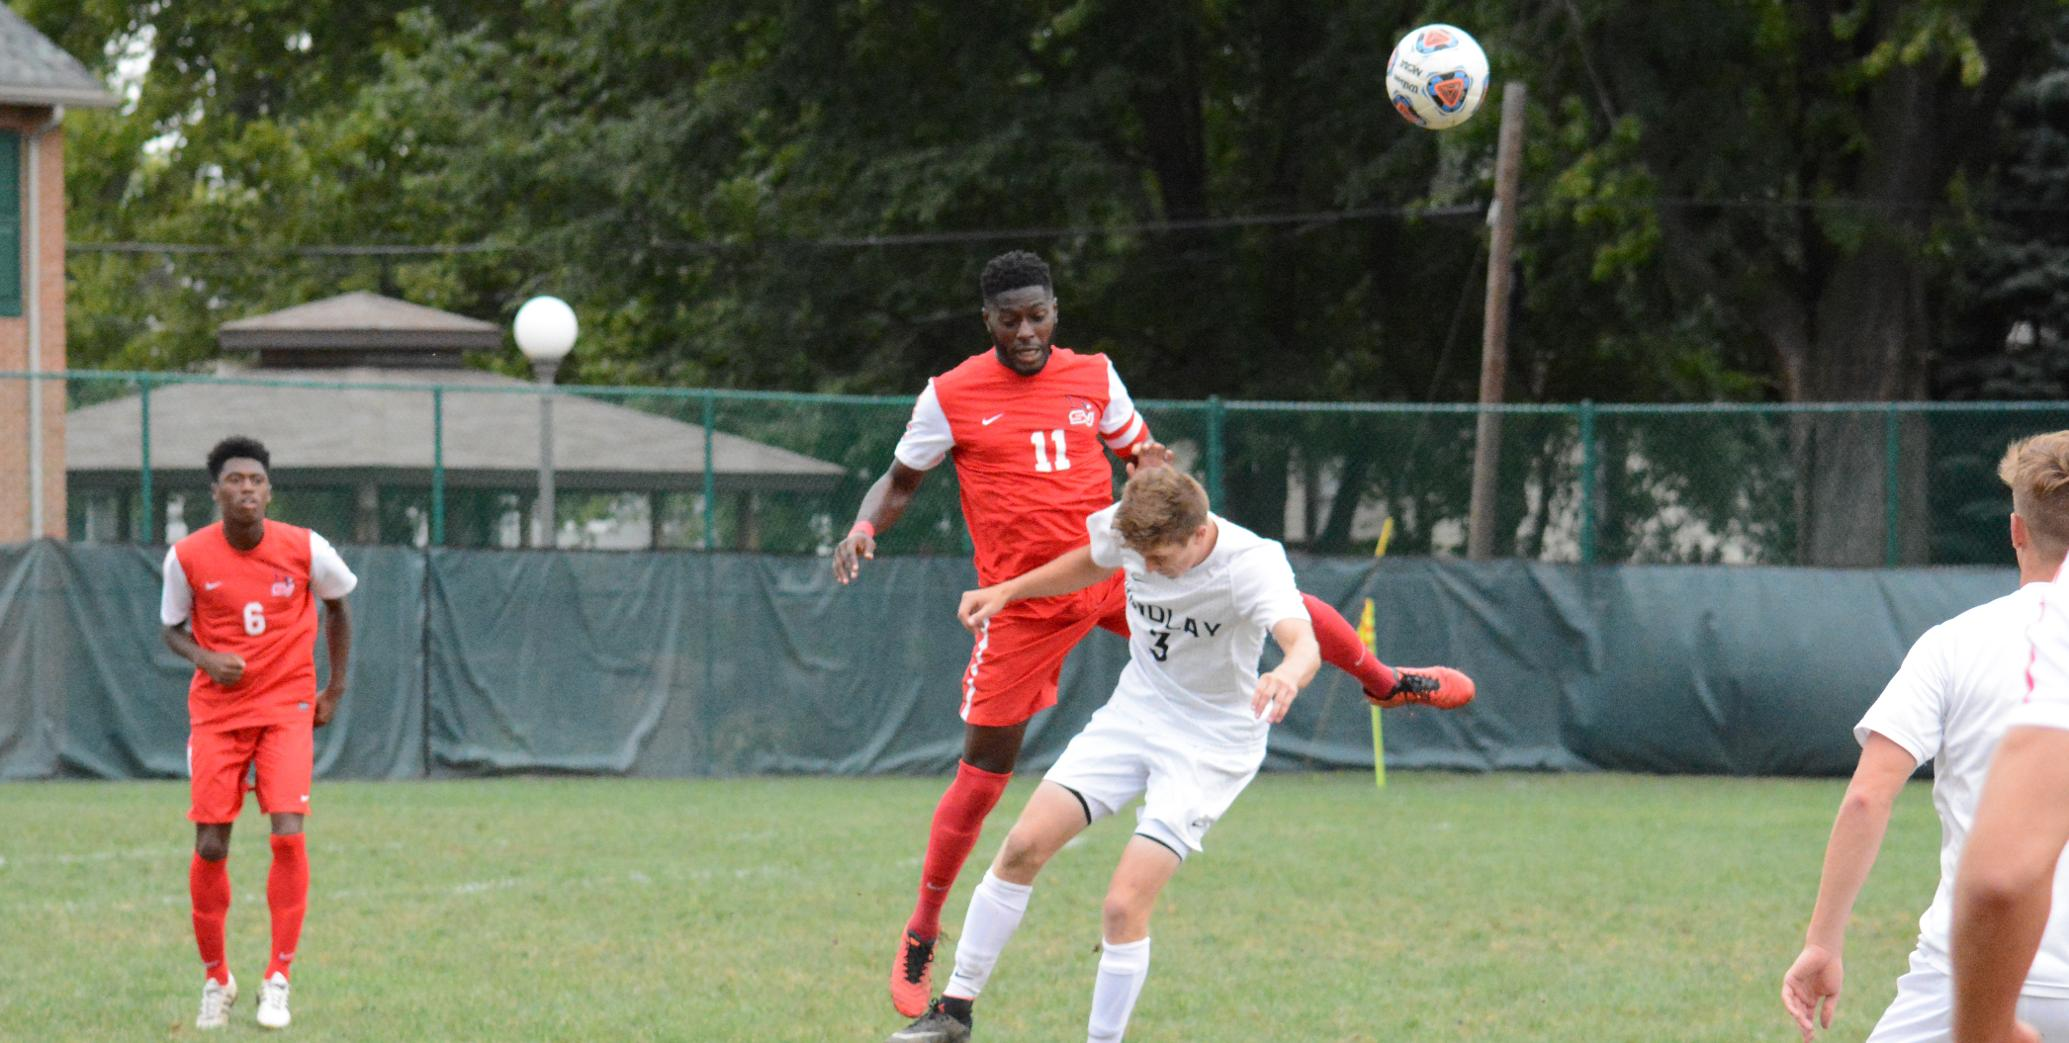 Men's Soccer drops overtime contest at Findlay, 3-2